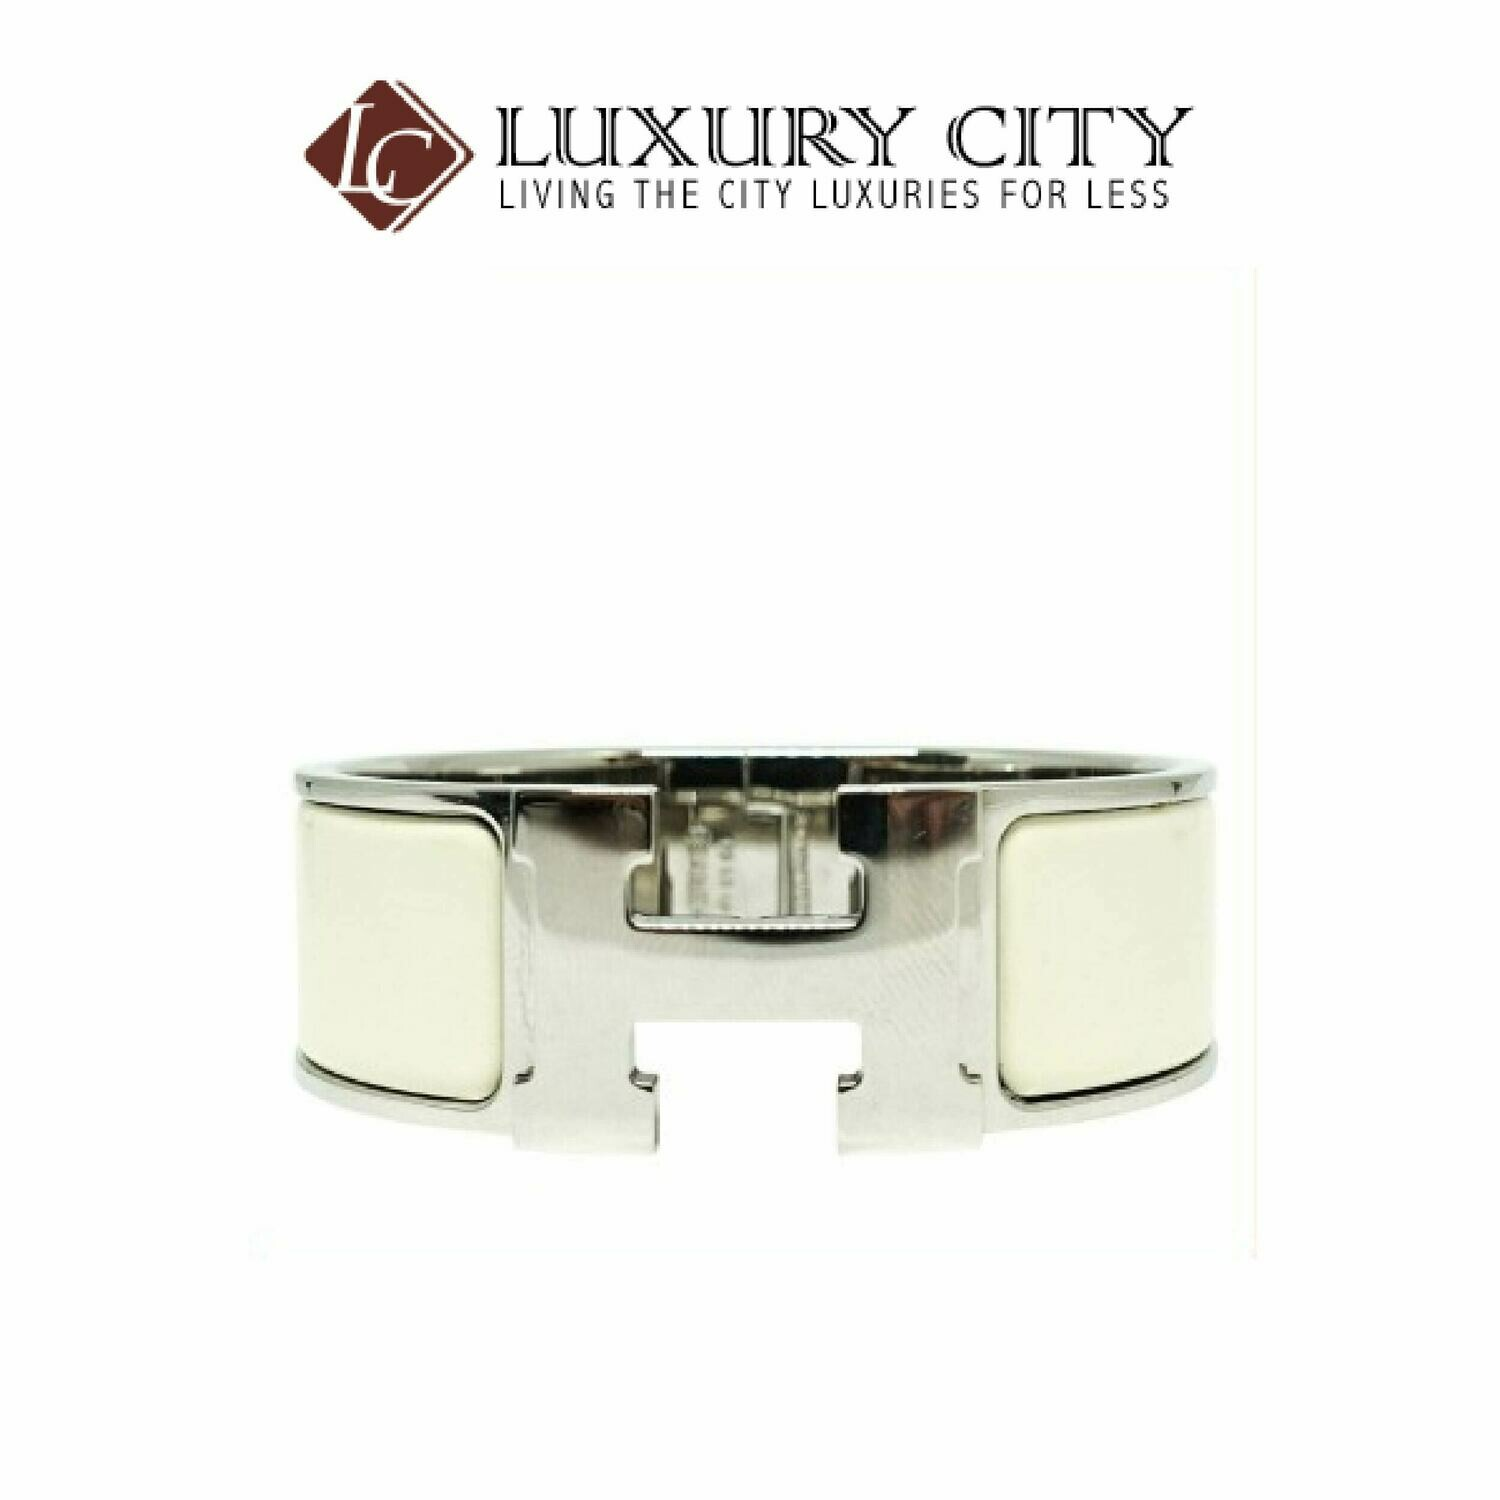 [Luxury City] Preloved Authentic Hermes White Chic Clac H Bracelet